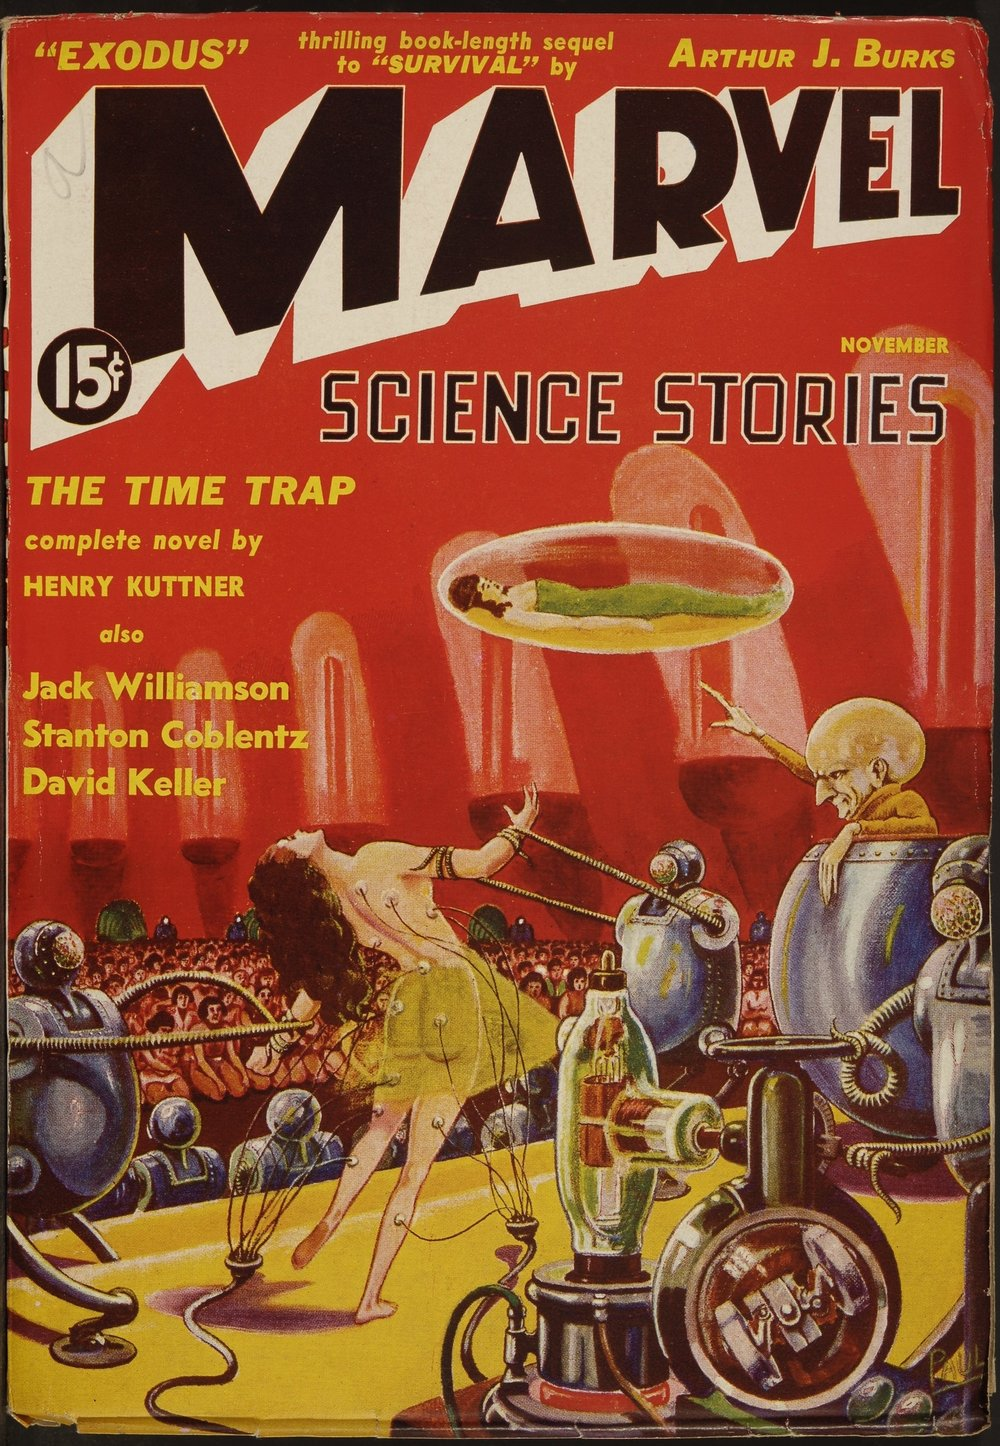 Marvel Science Stories, vol. 1 n°2, novembre 1938. Collection Maison d'Ailleurs